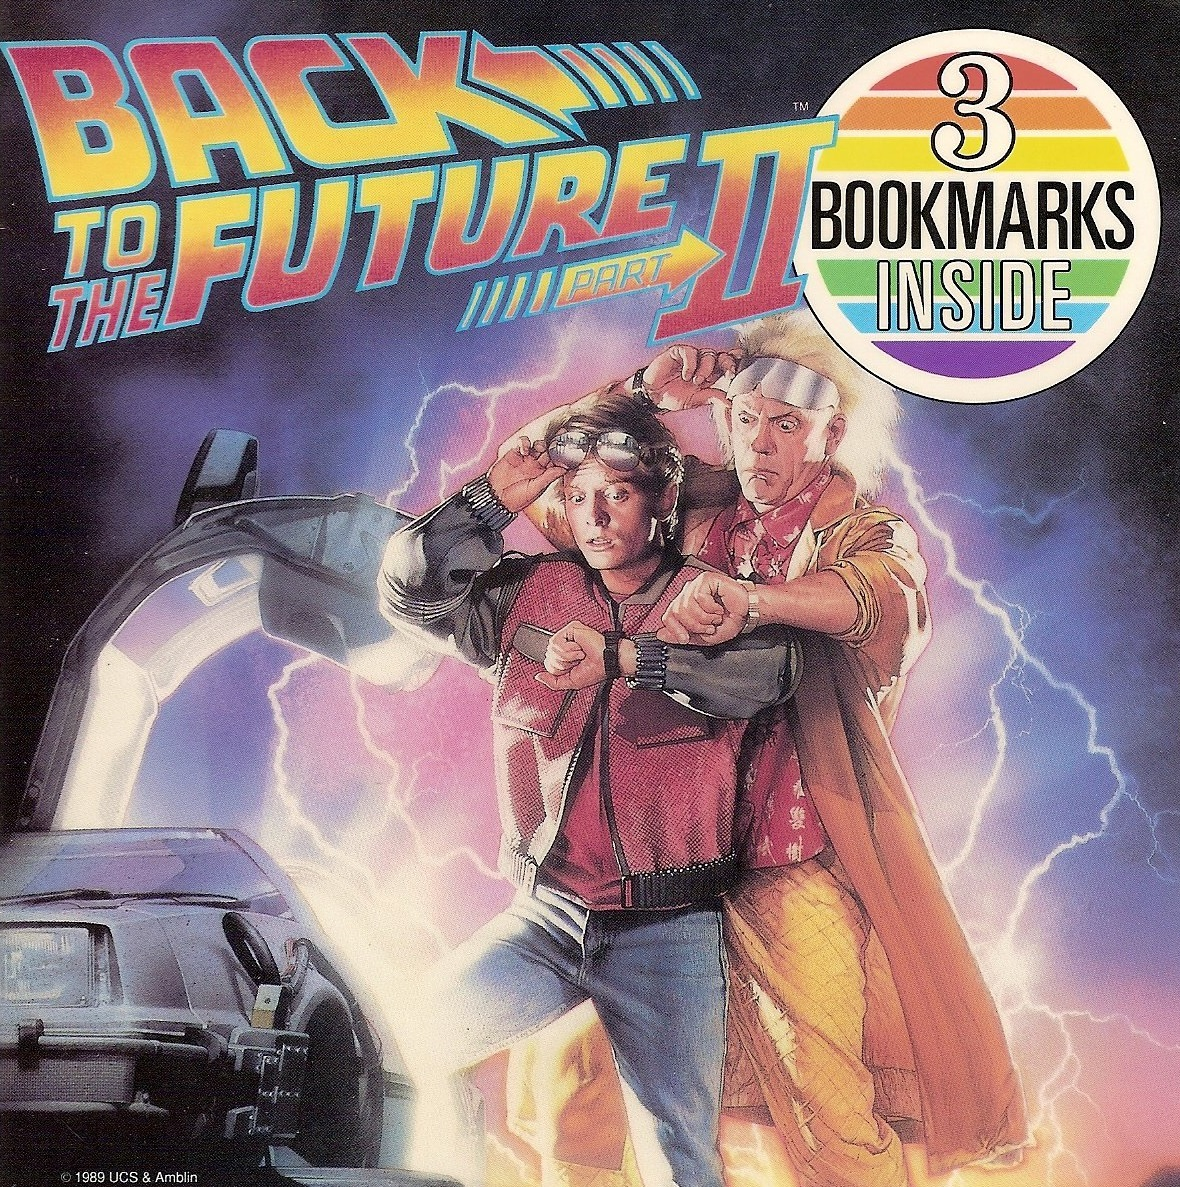 Back to the Future Part 2 (Antioch Publishing)